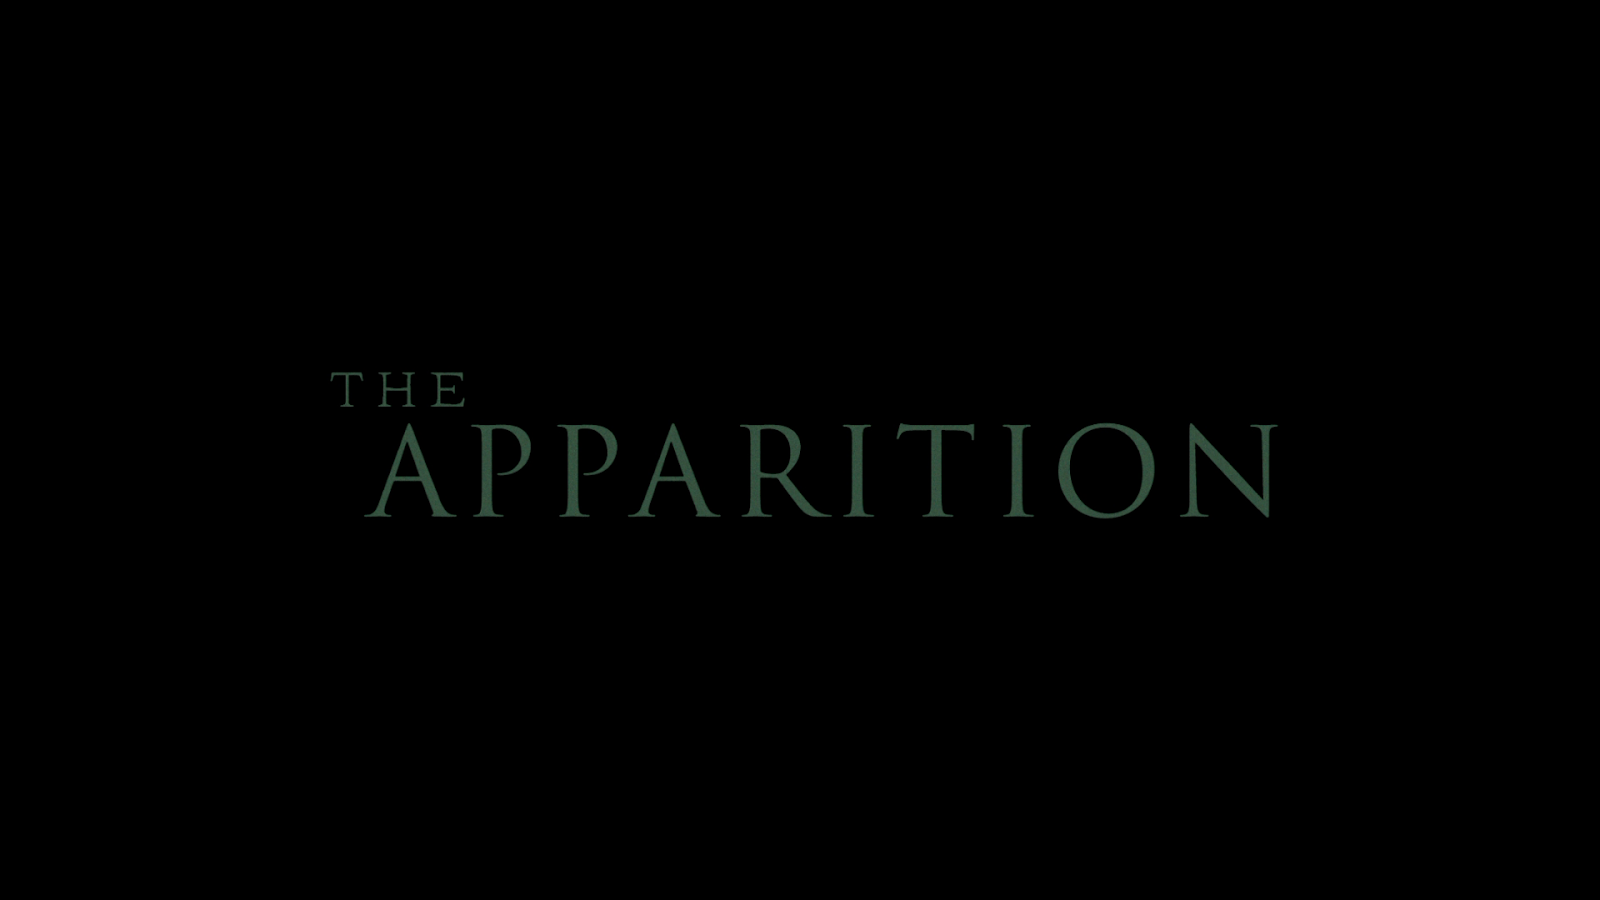 the apparition 2012 full movie